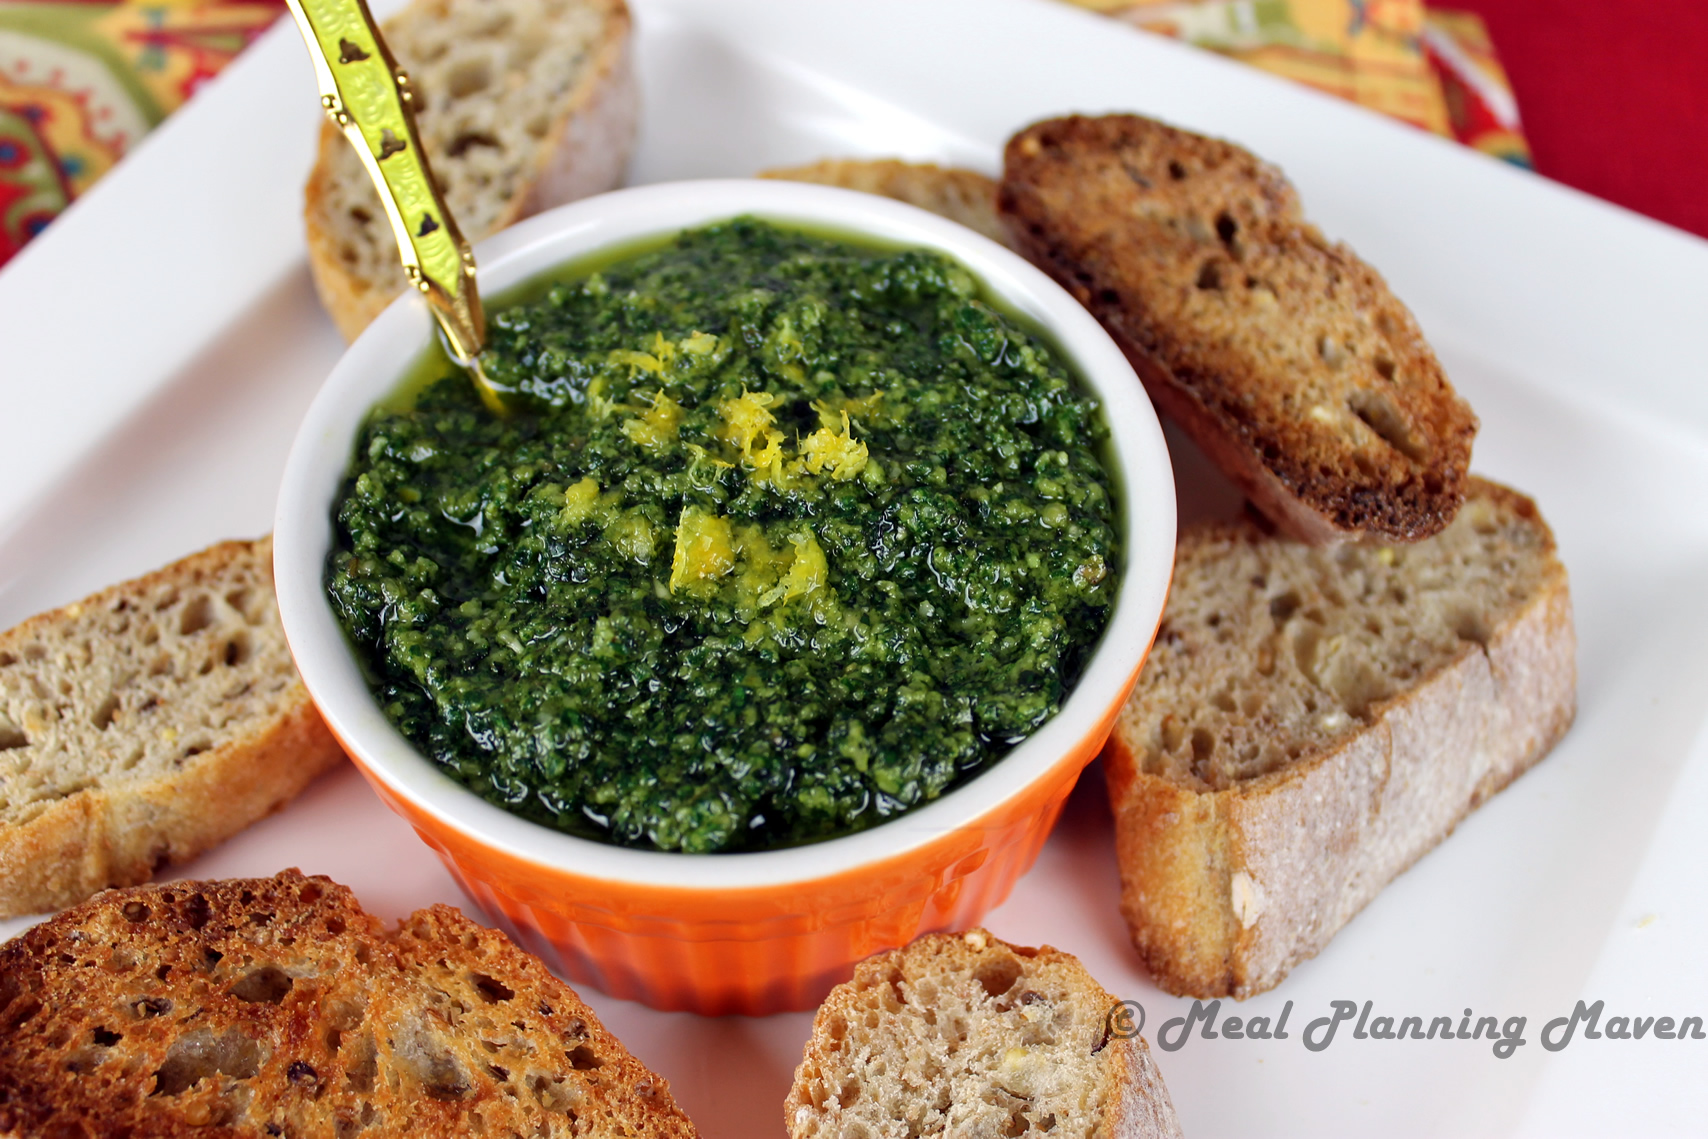 Basil-Mint Pesto